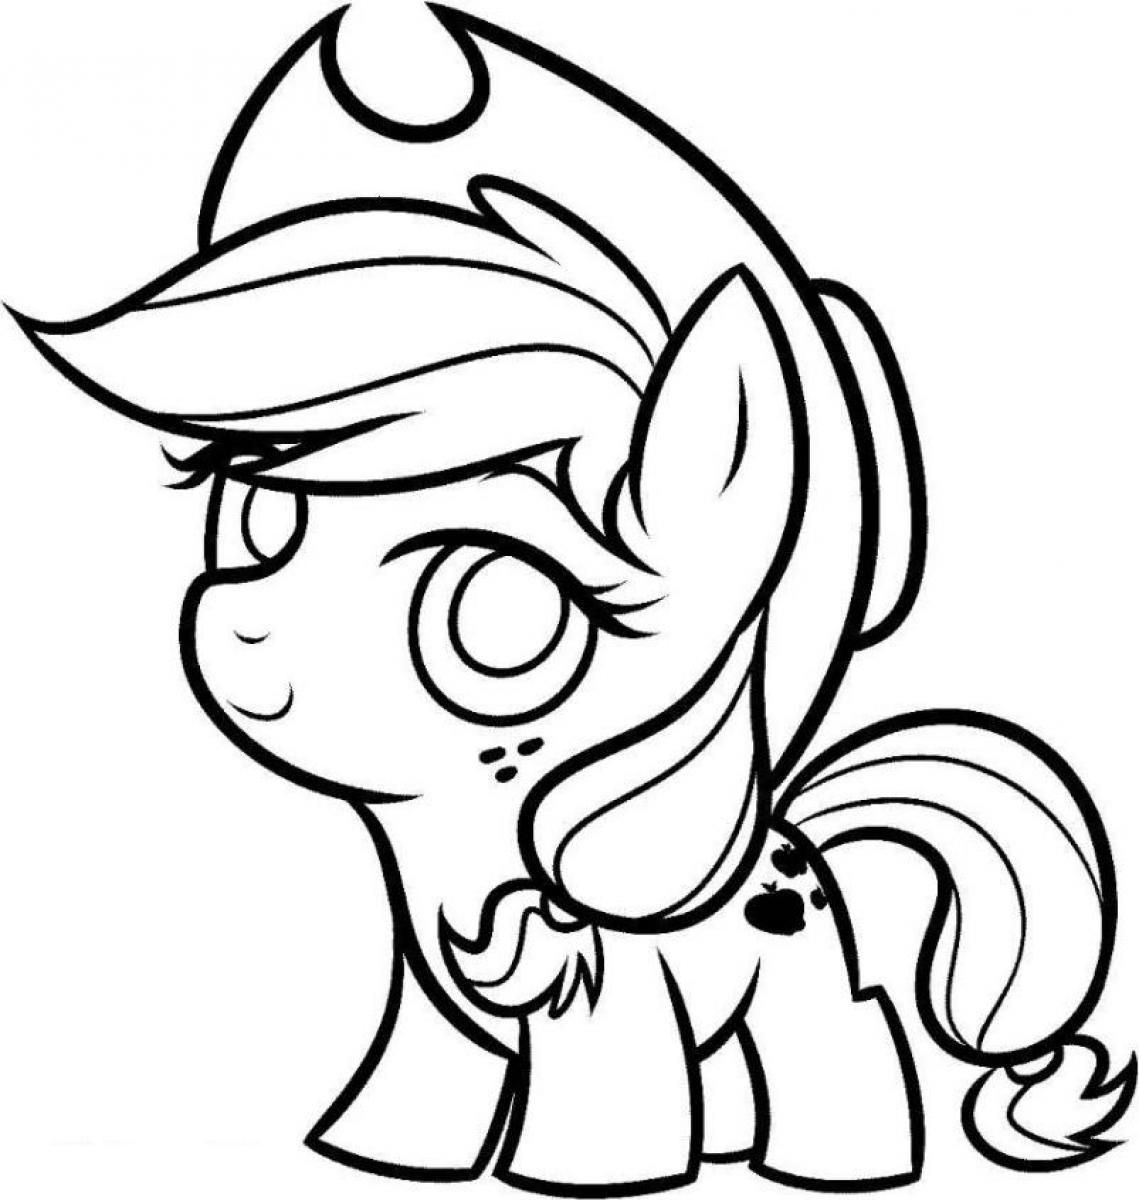 applejack coloring pages baby applejack my little pony coloring cute coloring coloring applejack pages